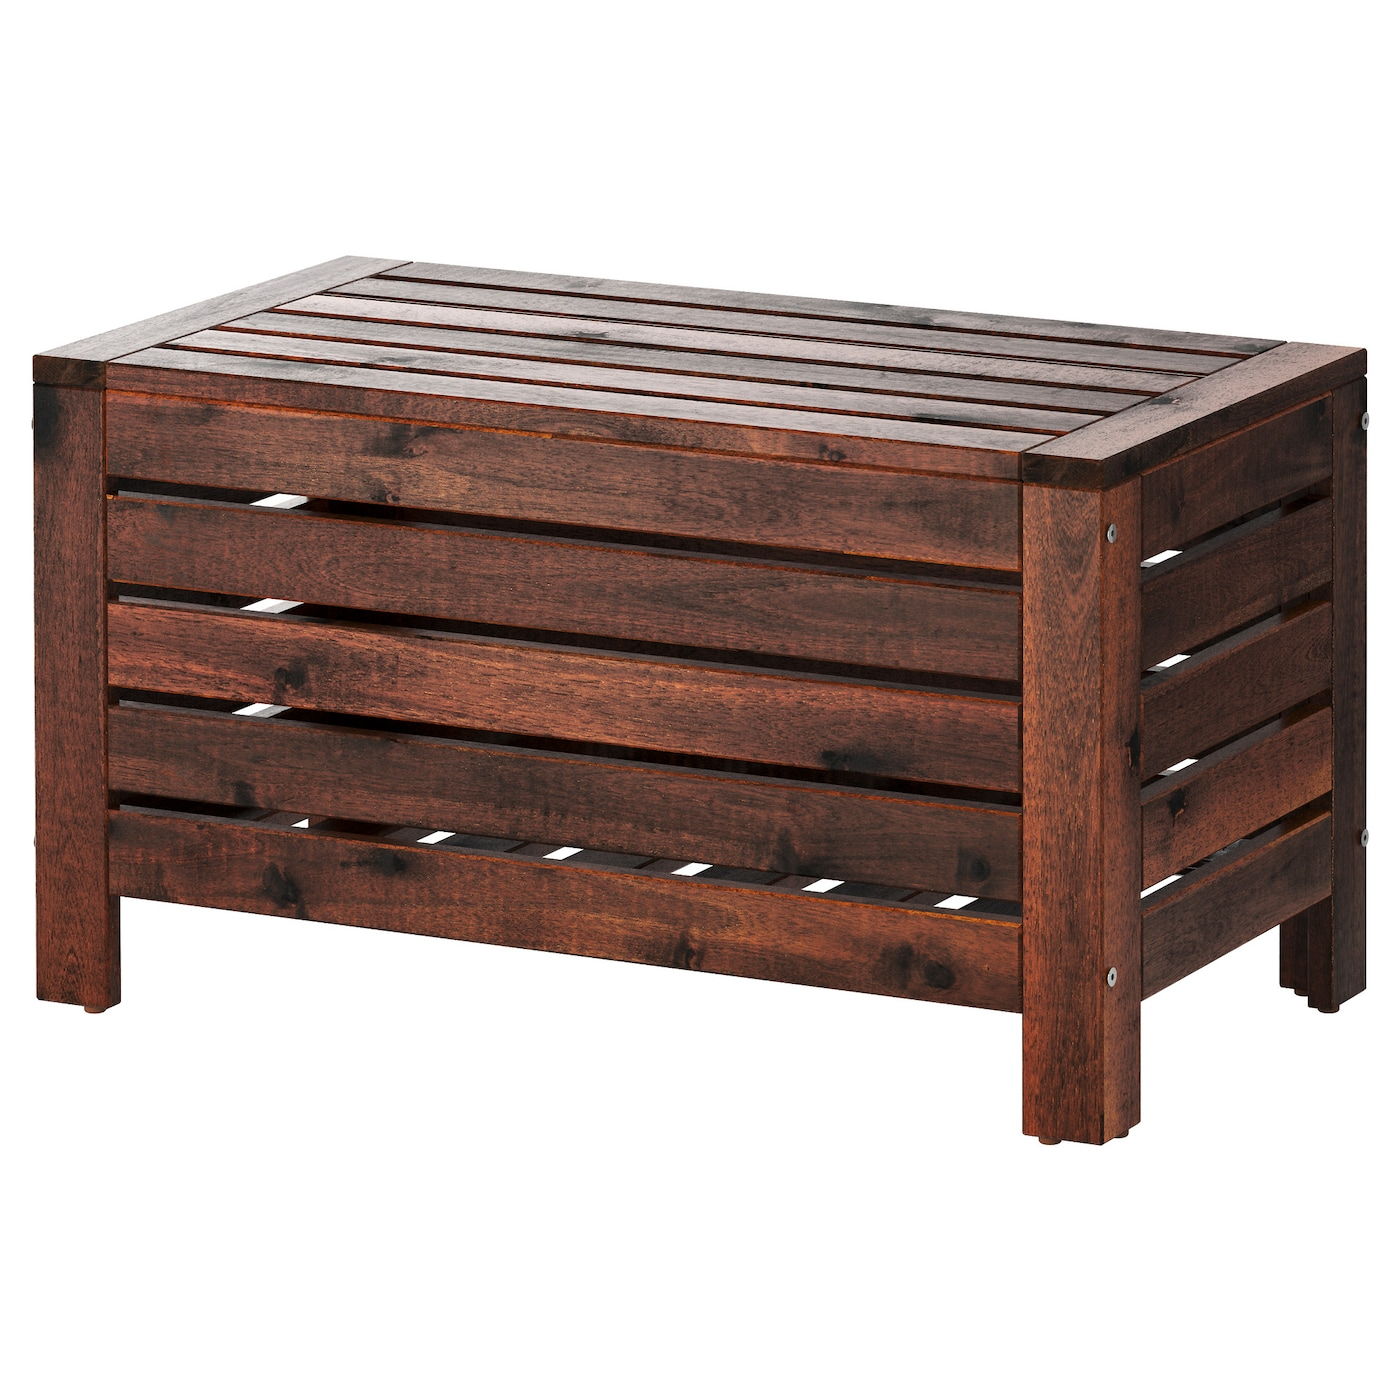 pplar storage bench outdoor brown stained 80x41 cm ikea. Black Bedroom Furniture Sets. Home Design Ideas